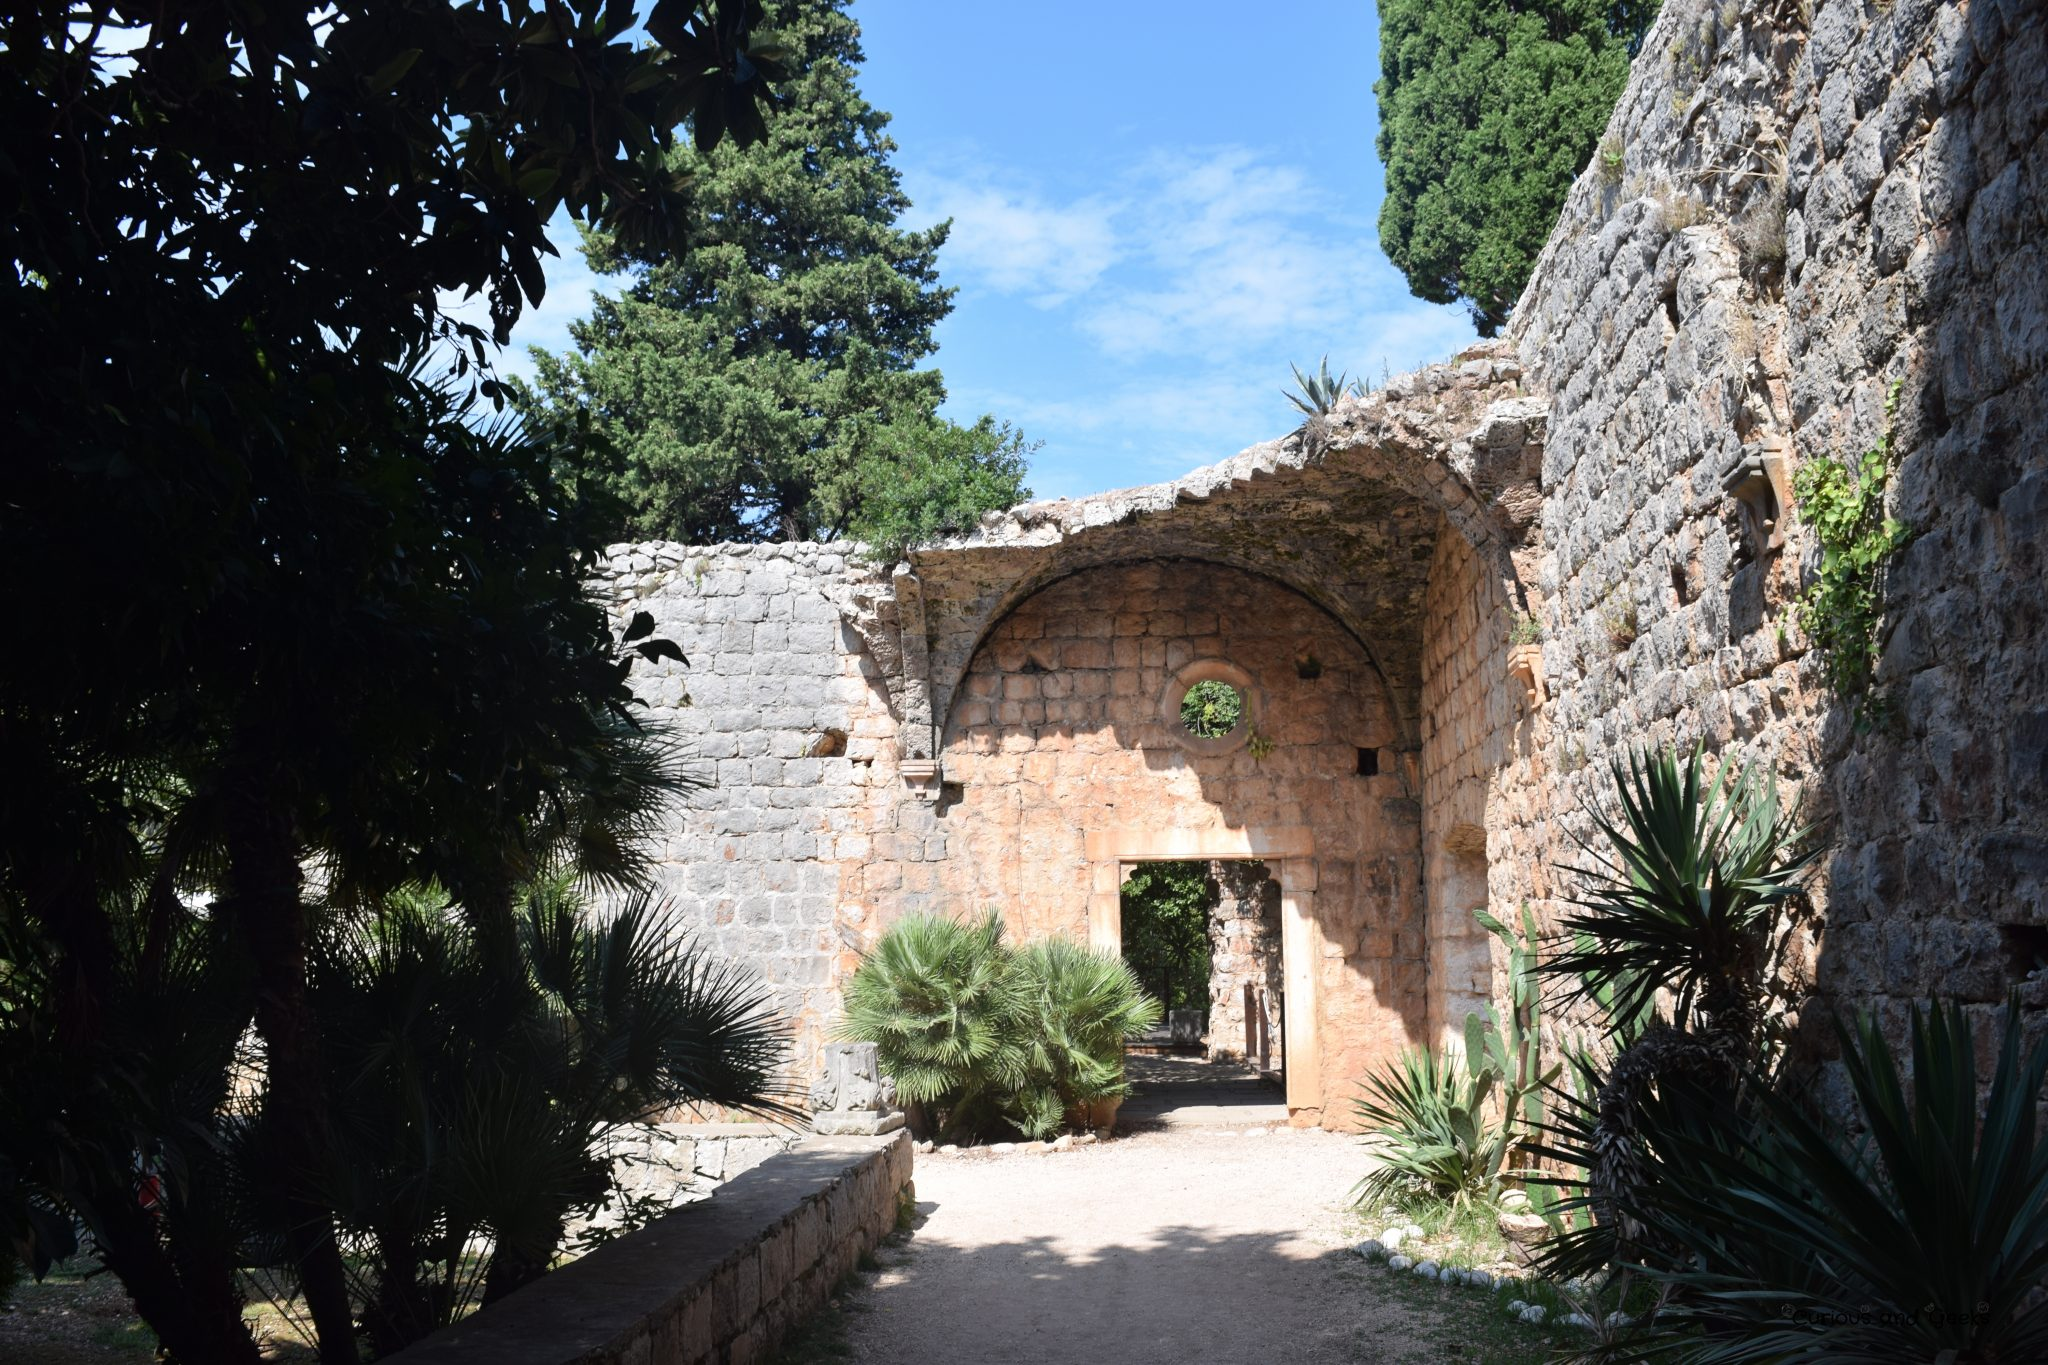 Benedictine Monastery in Lokrum - filming location for s02e05 of Game of Thrones